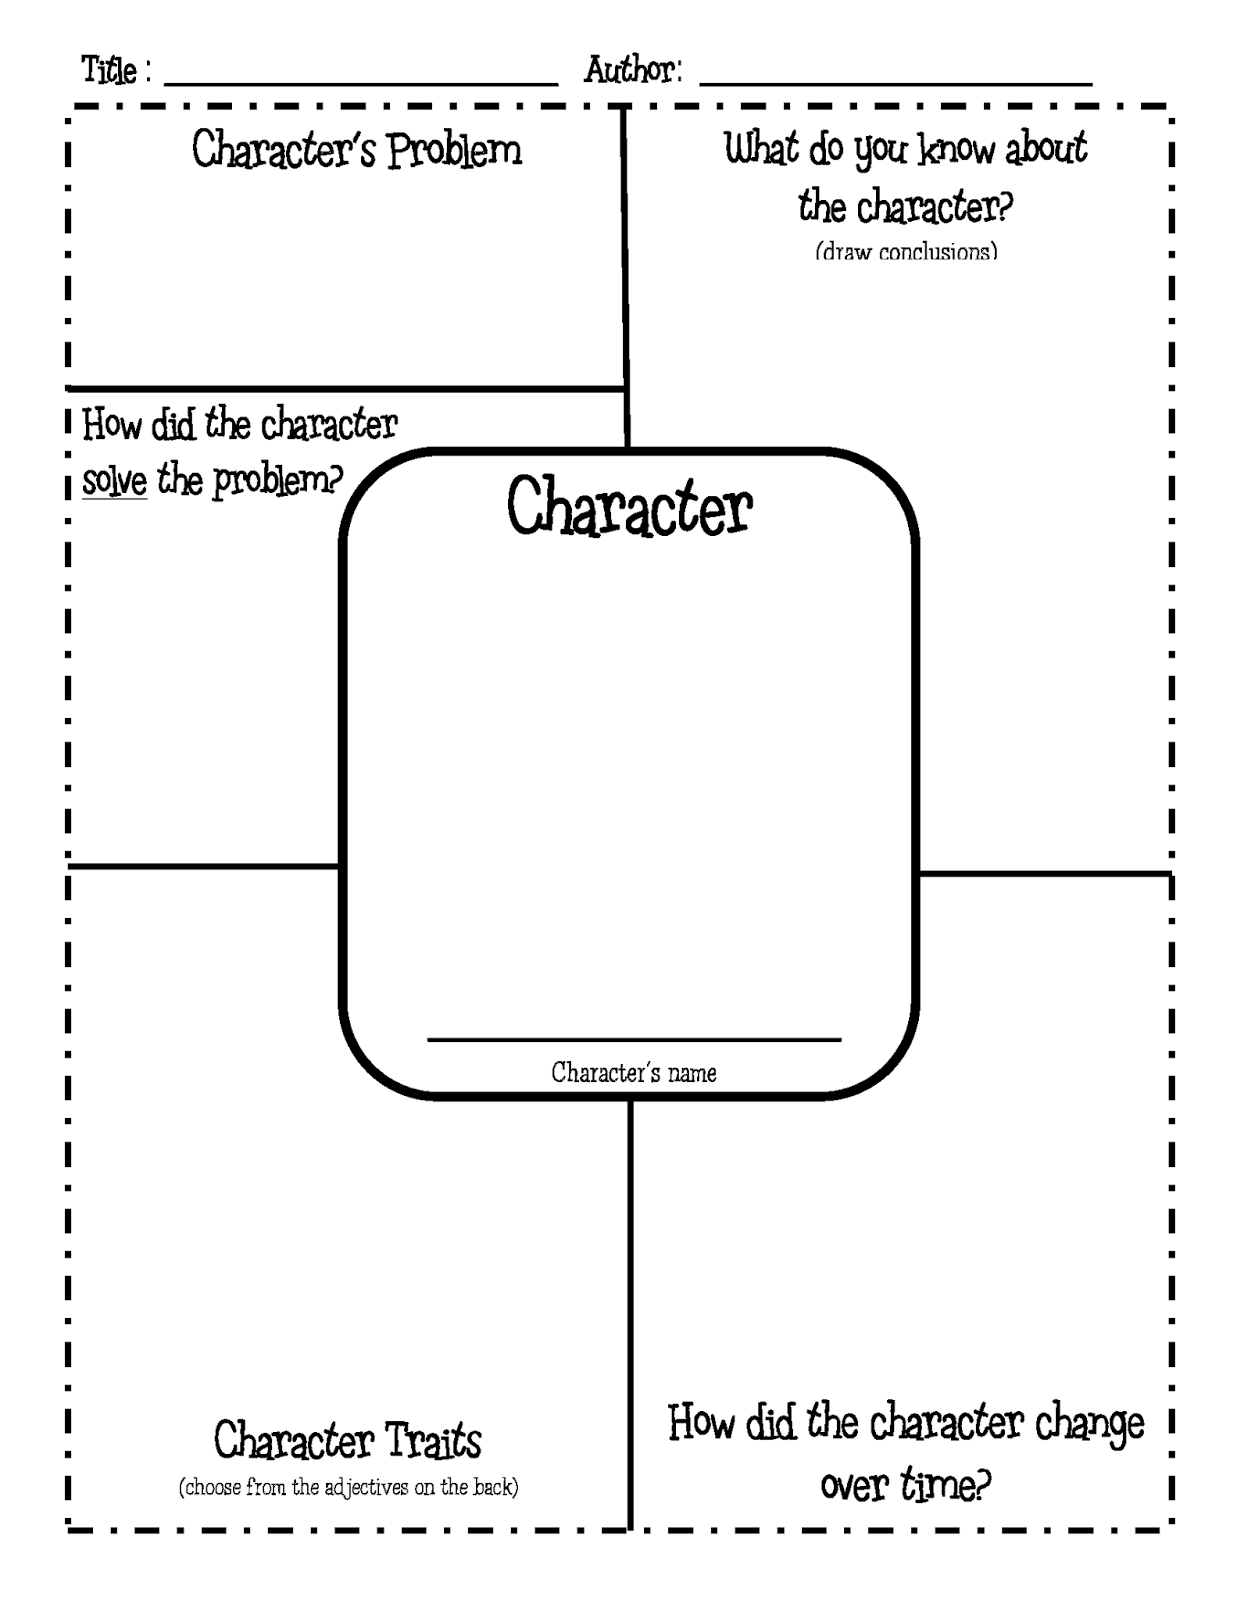 Character Traits Reader Response Pages